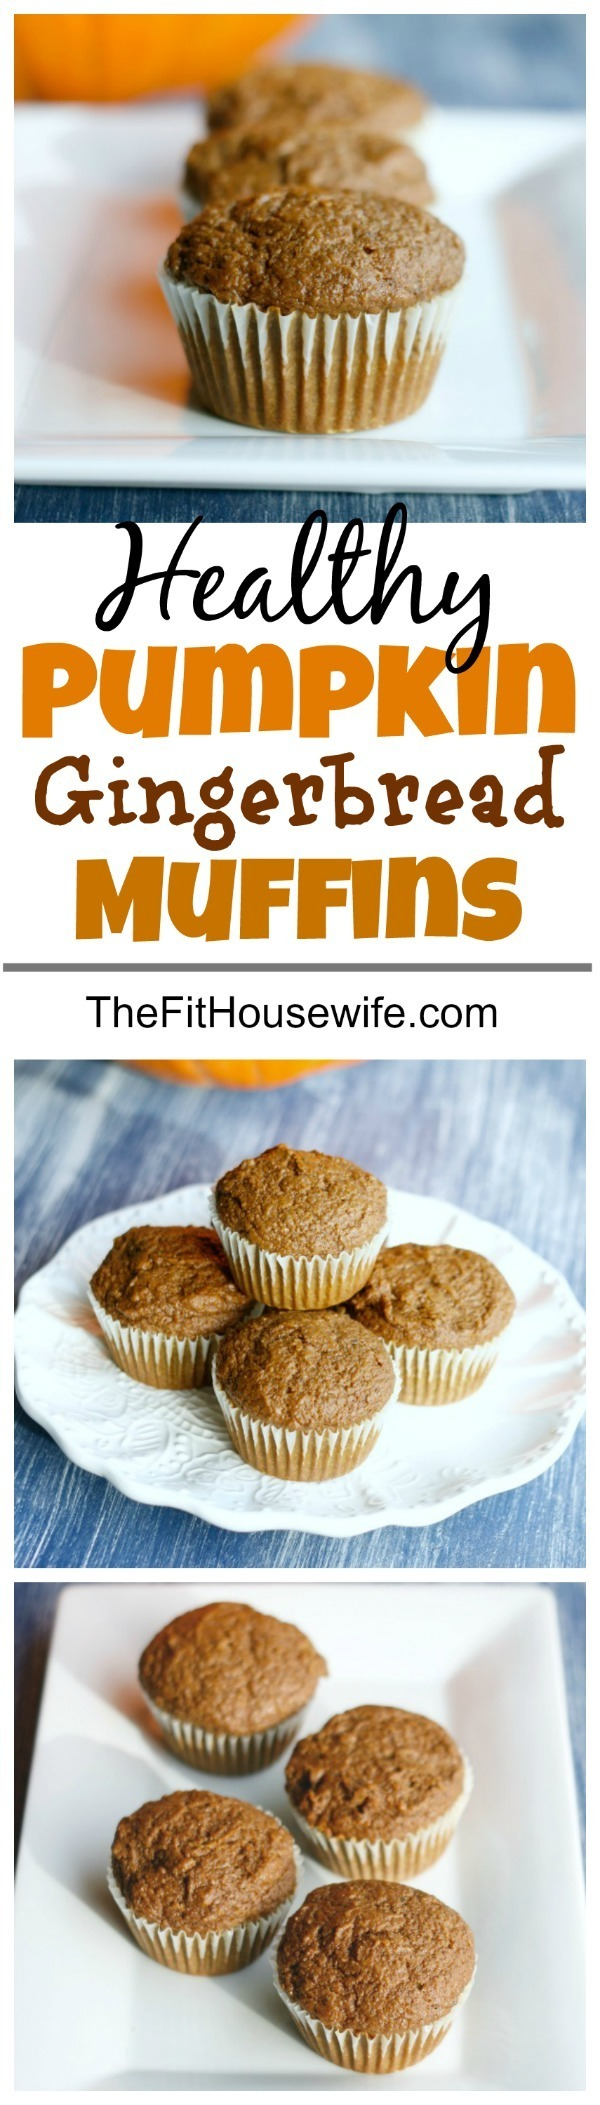 Healthy Pumpkin Gingerbread Muffins